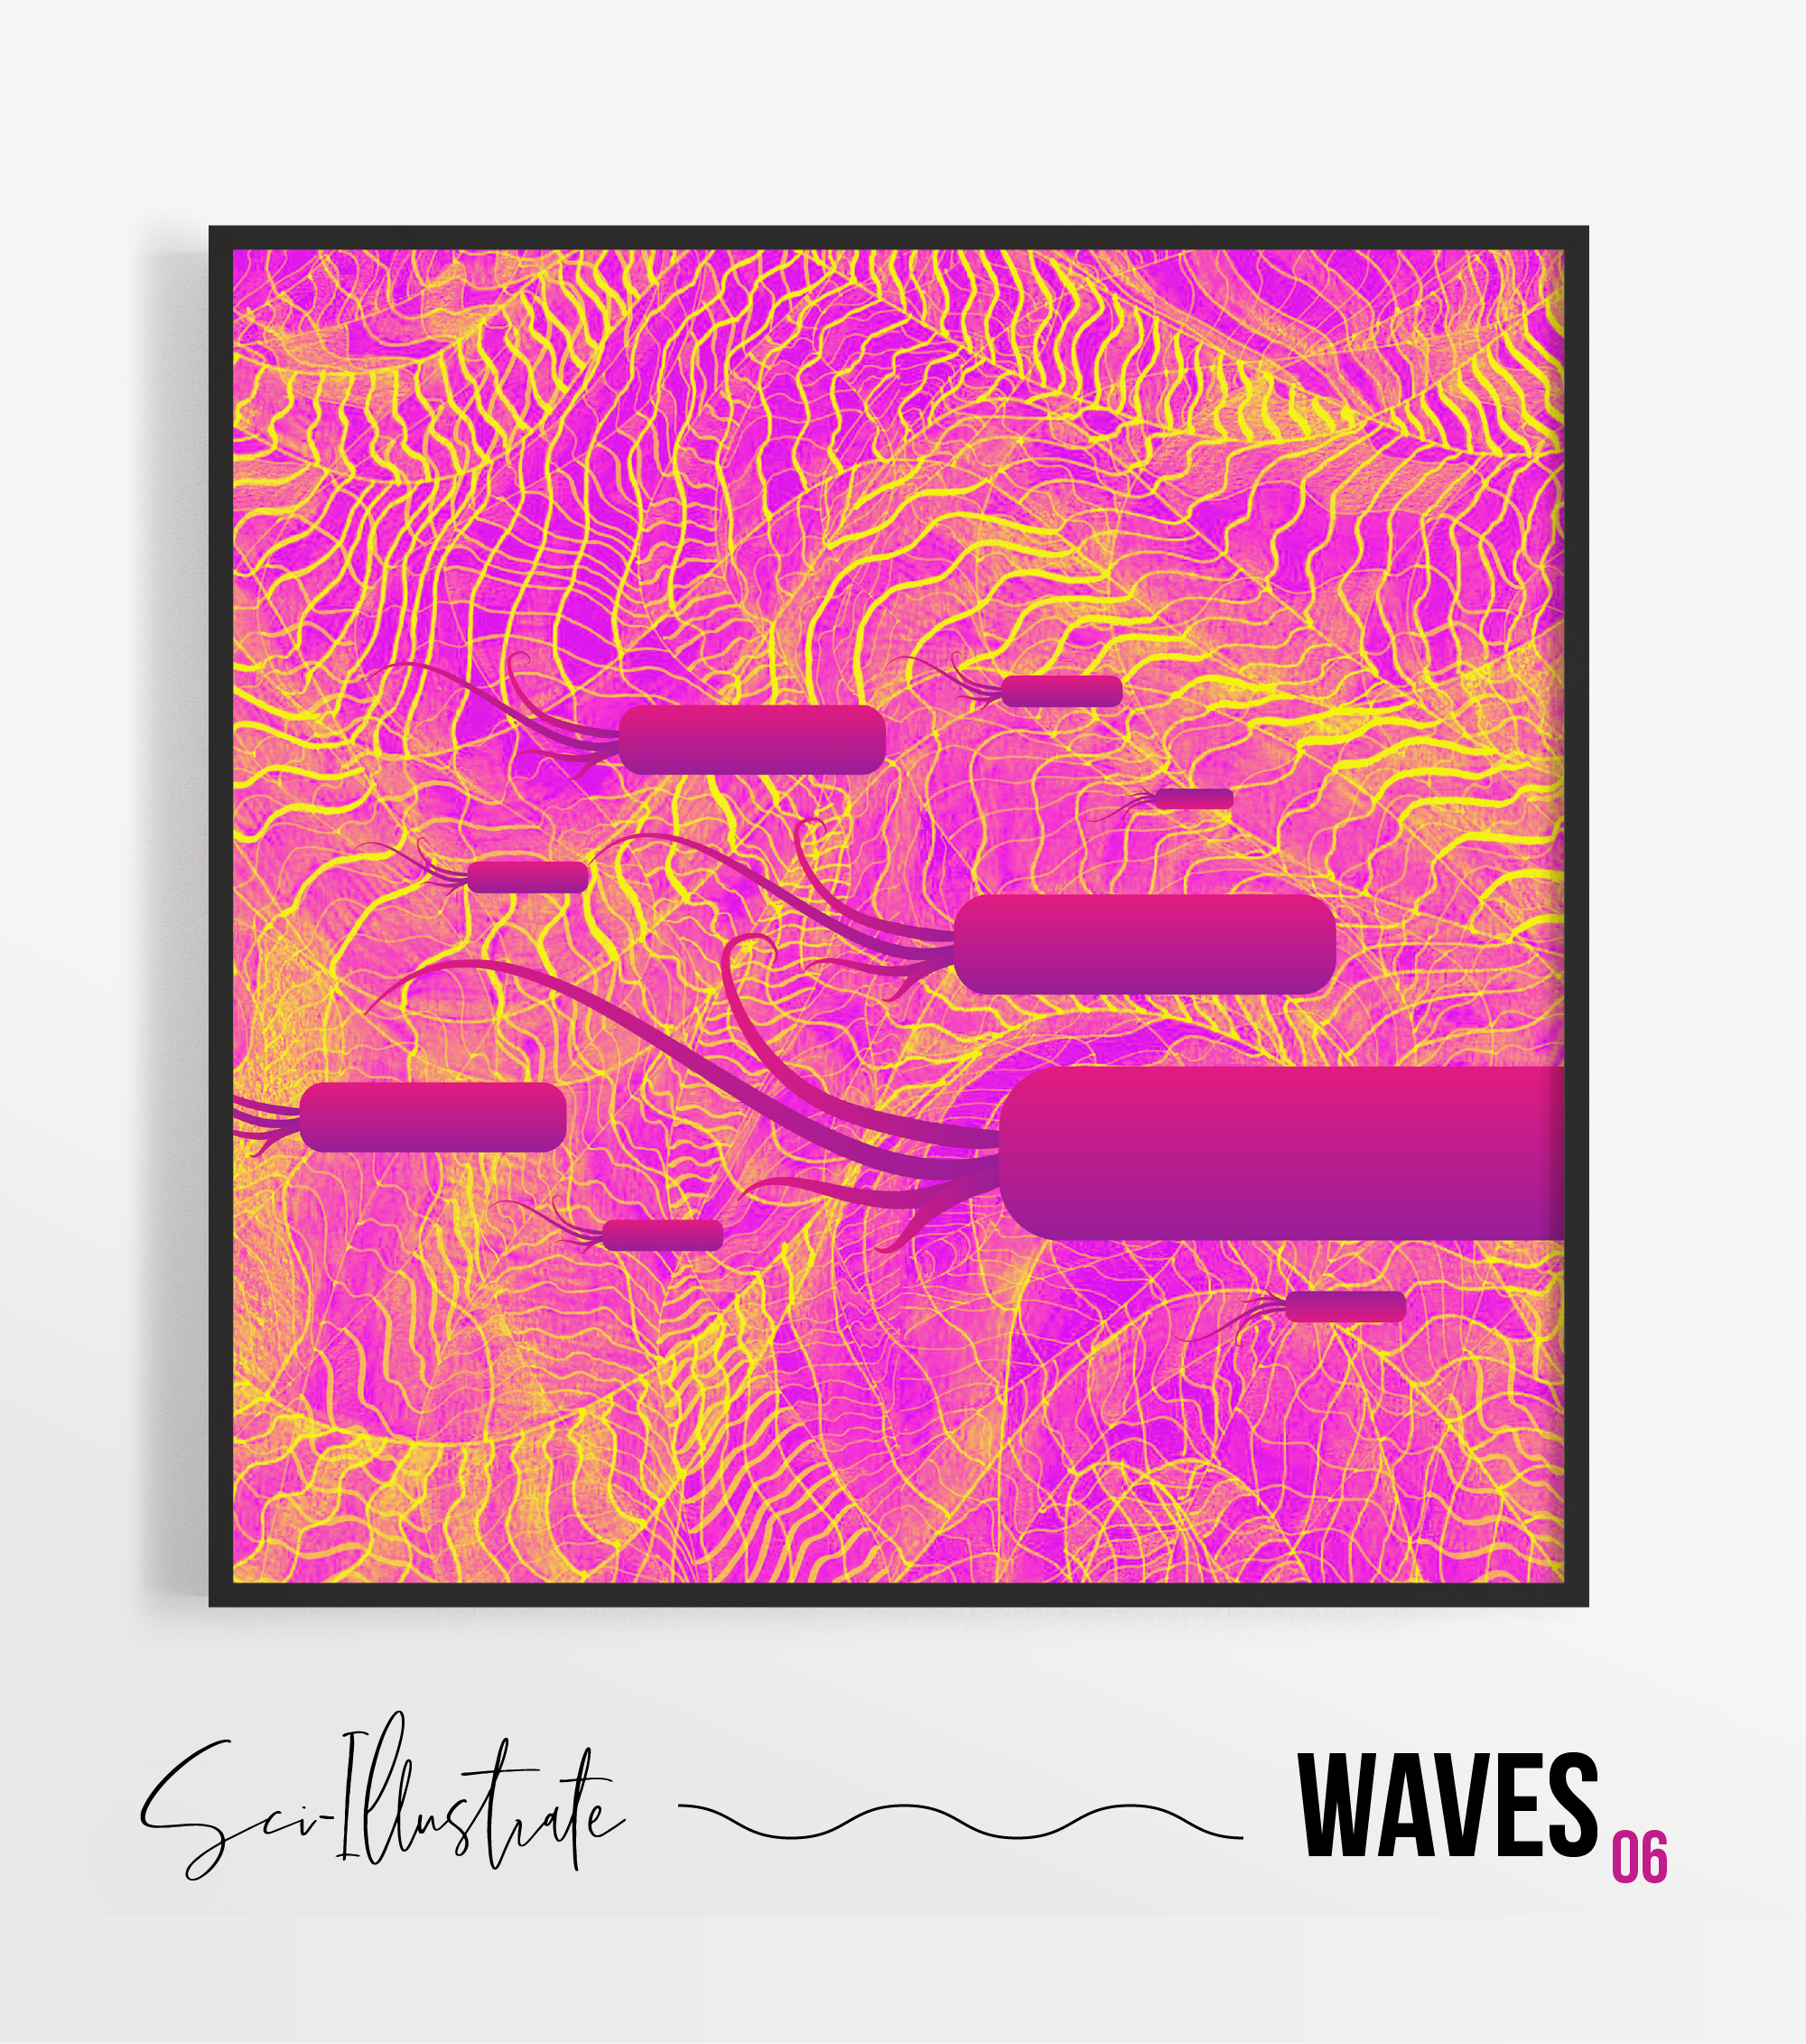 waves -SM 06-01-01.png